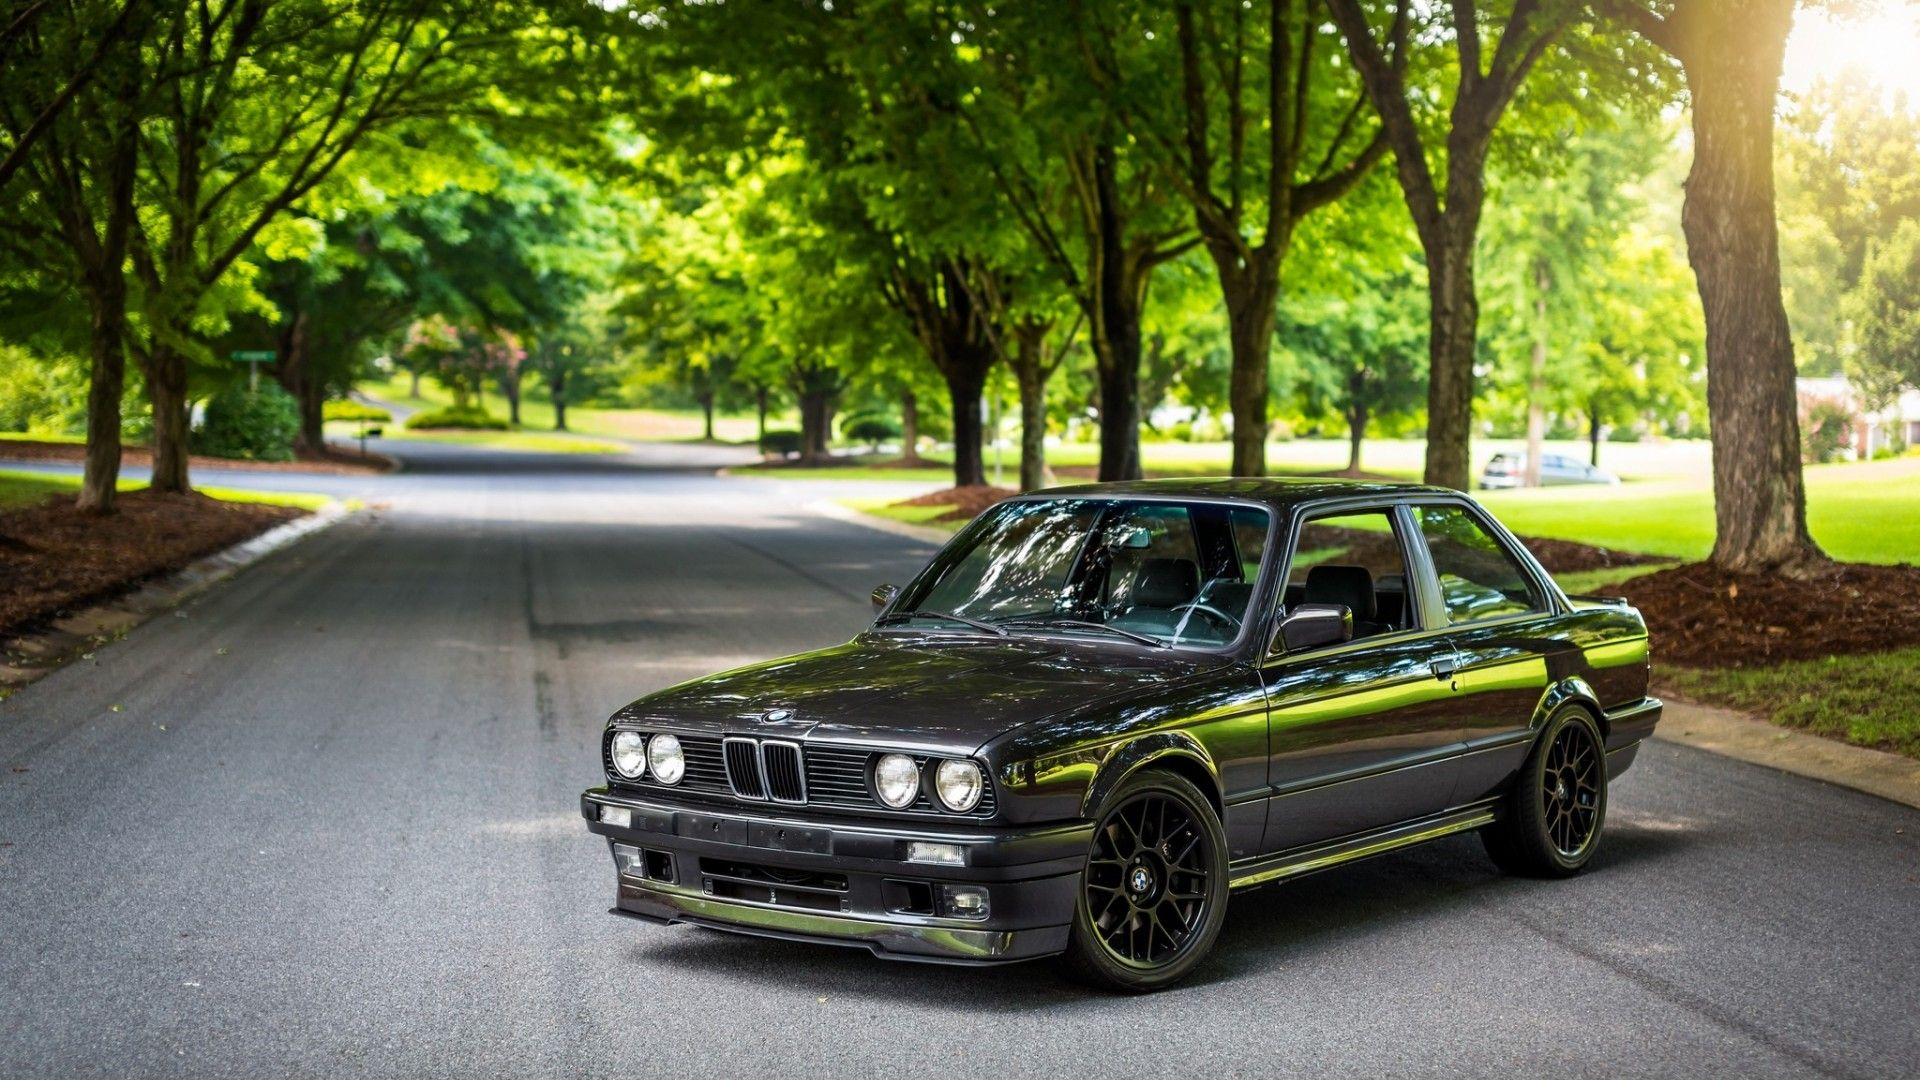 Bmw E30 Wallpaper Posted By Ethan Thompson